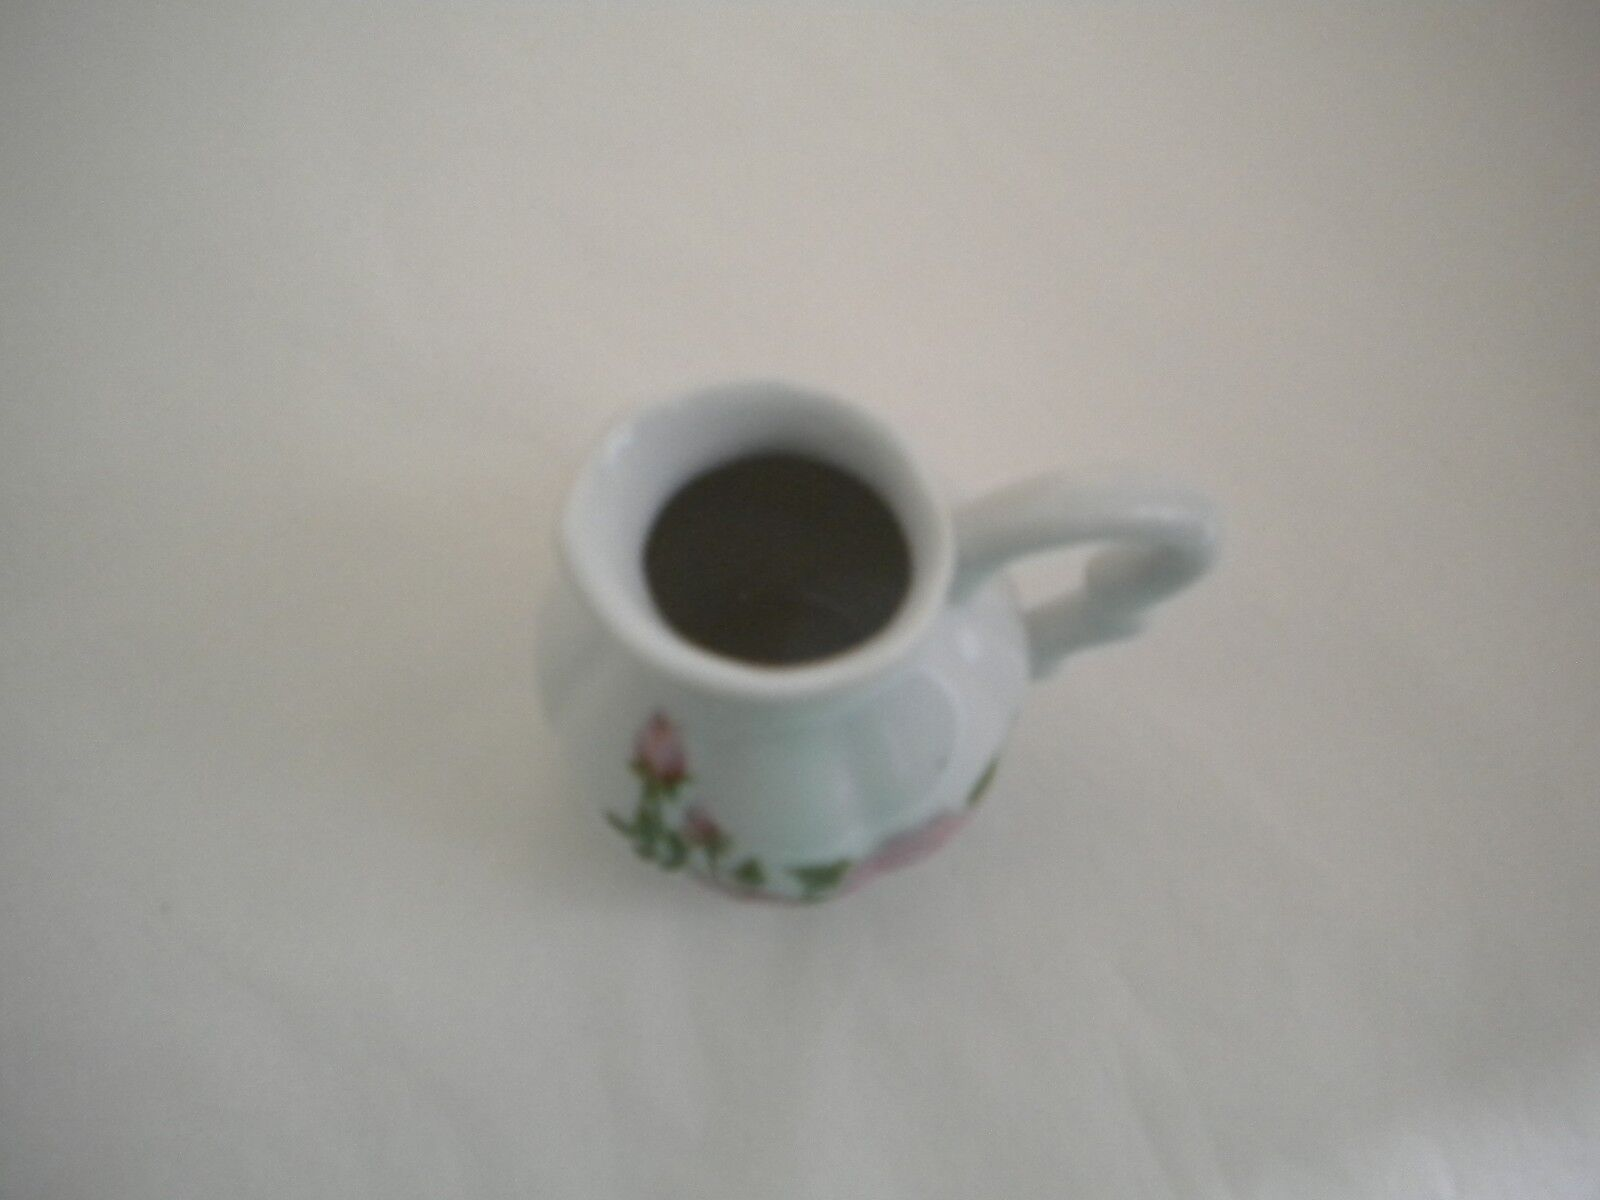 Target Cantinaware Sugar Creamer And Plate Wwwmiifotoscom